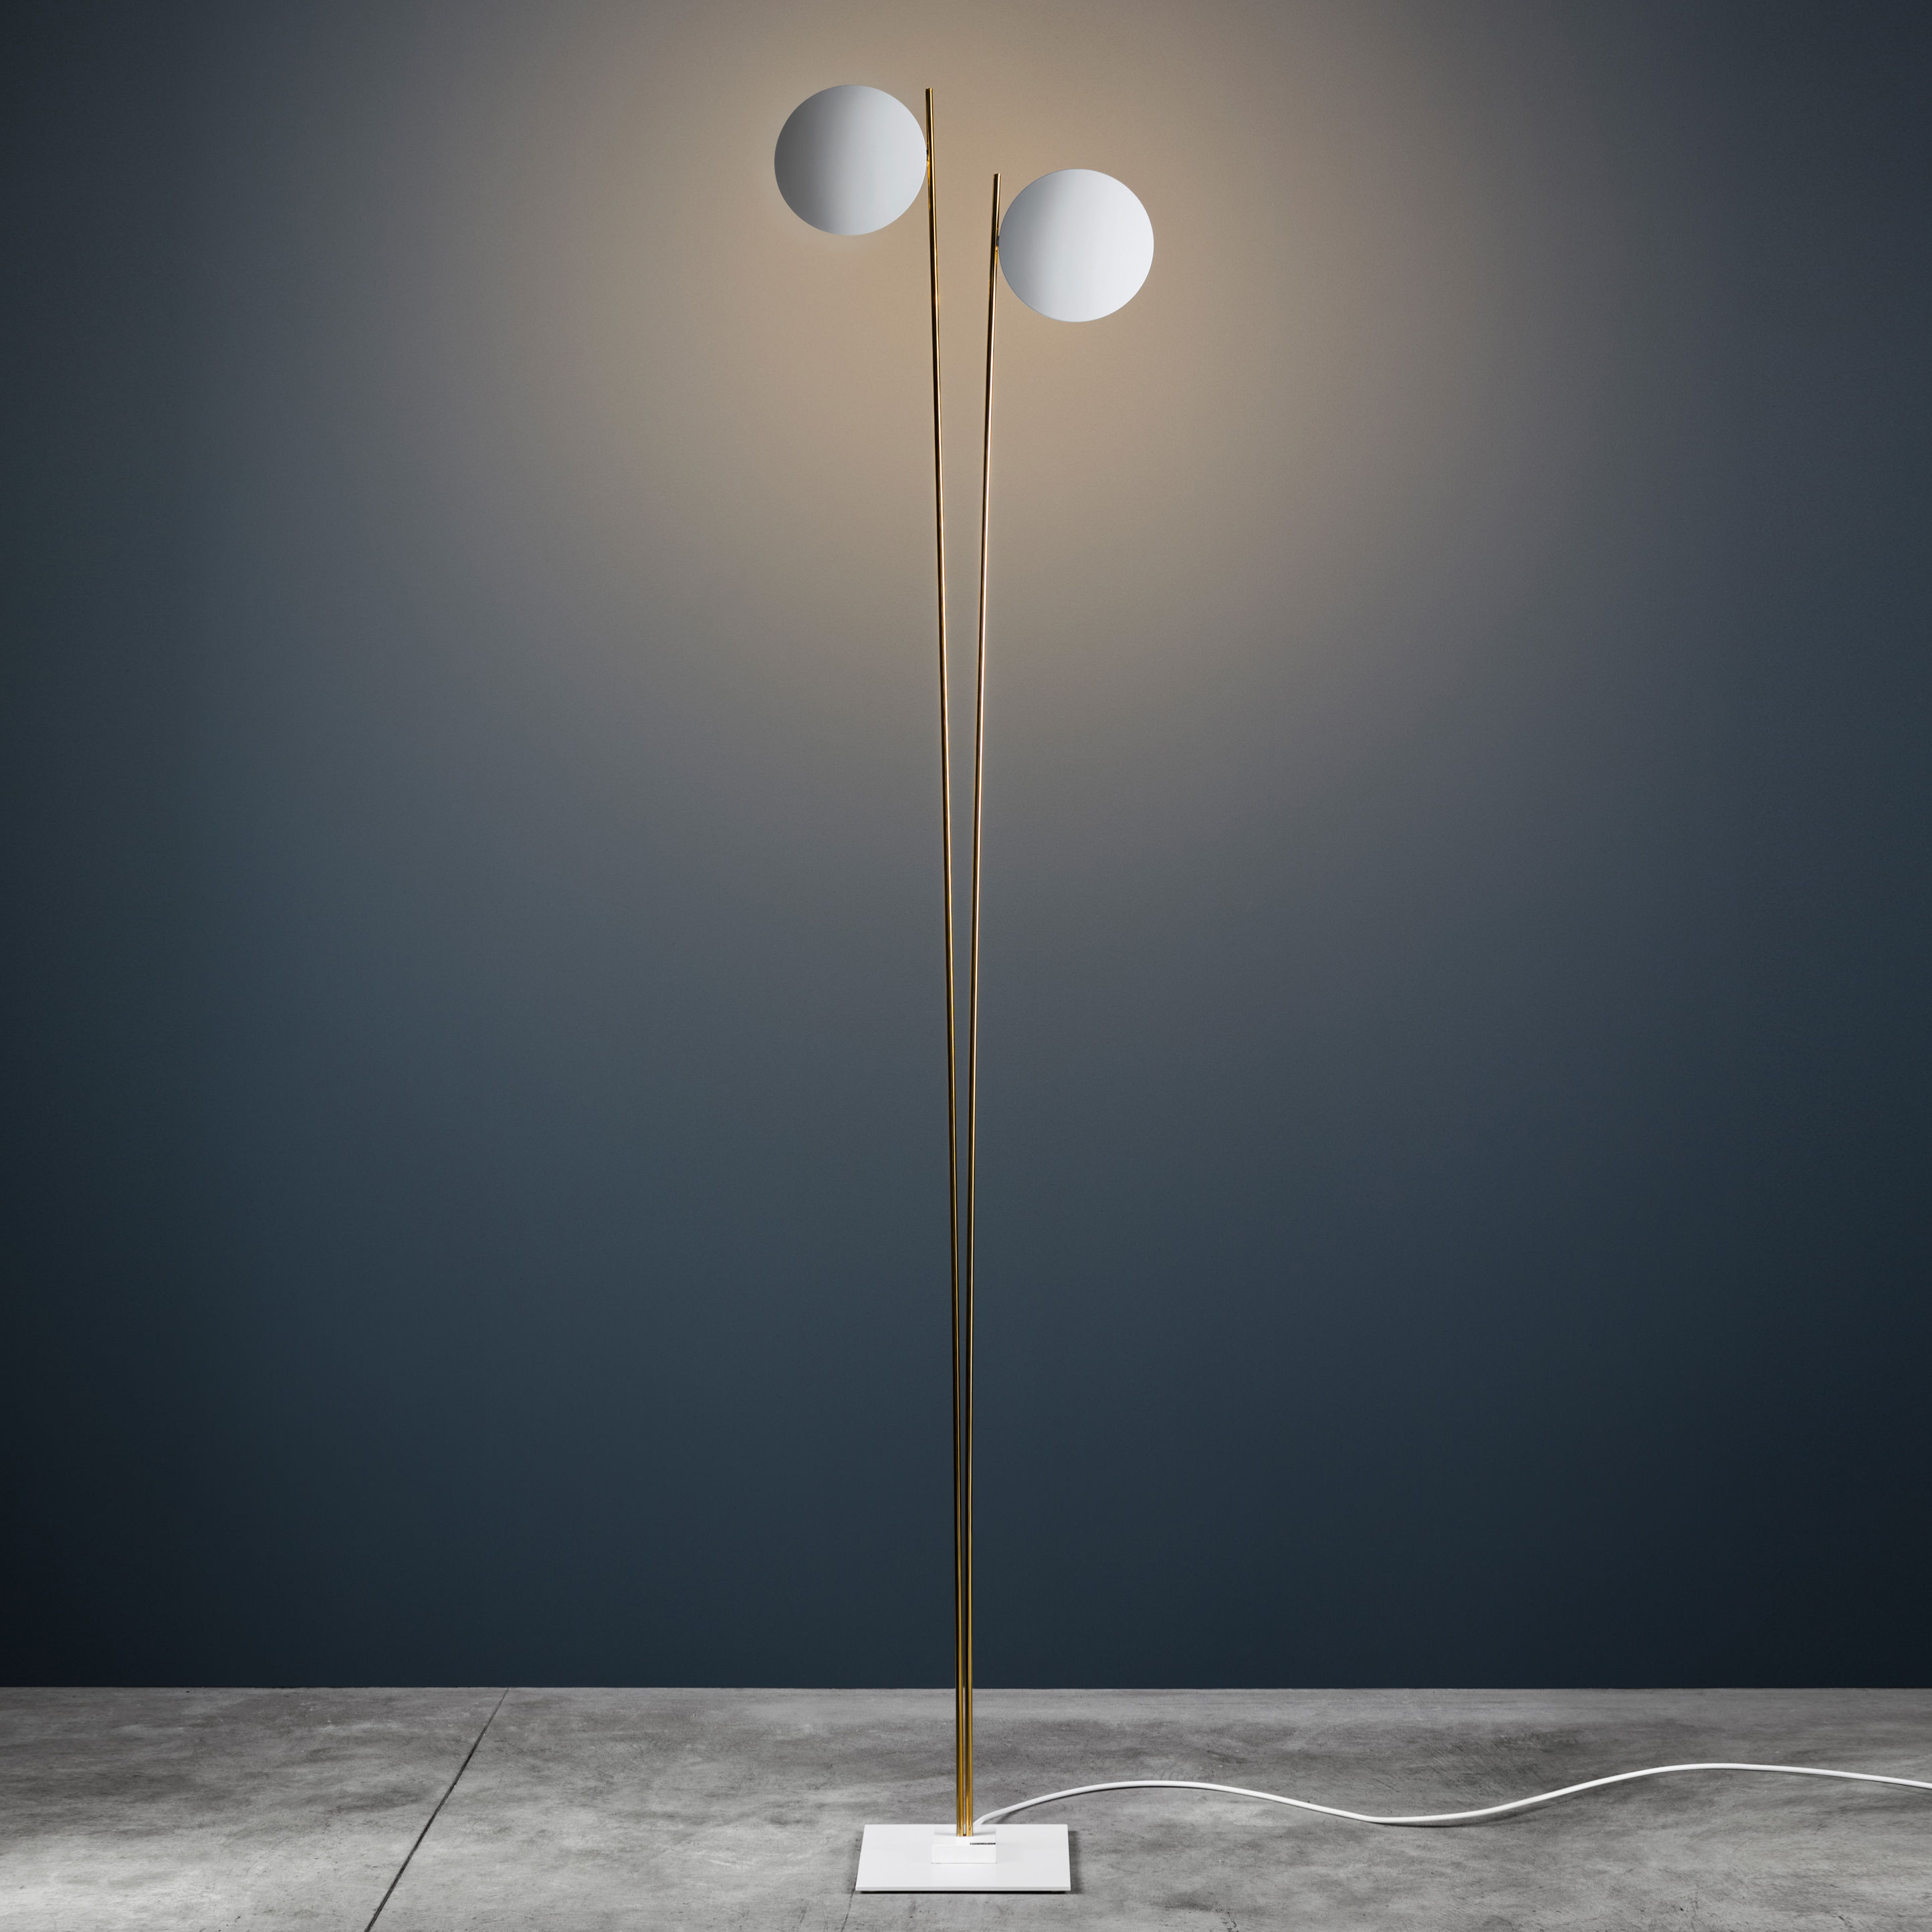 Lighting - Floor lamps - Lederam F2 Floor lamp - / LED - H 198 cm by Catellani & Smith - White disks / Golden rod / White base - Golden metal, Painted aluminium